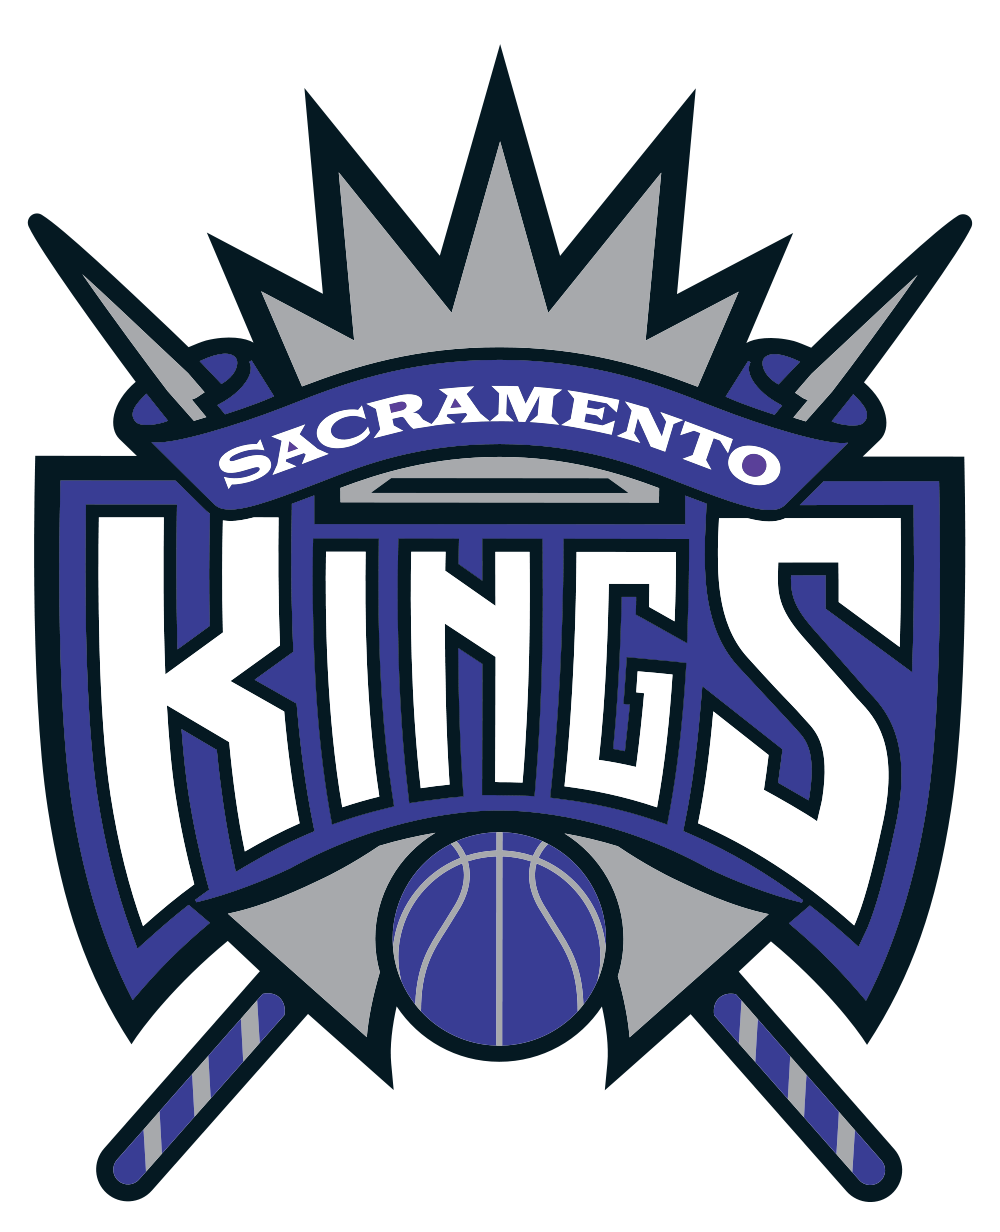 Logos, Coming soon and Sacramento